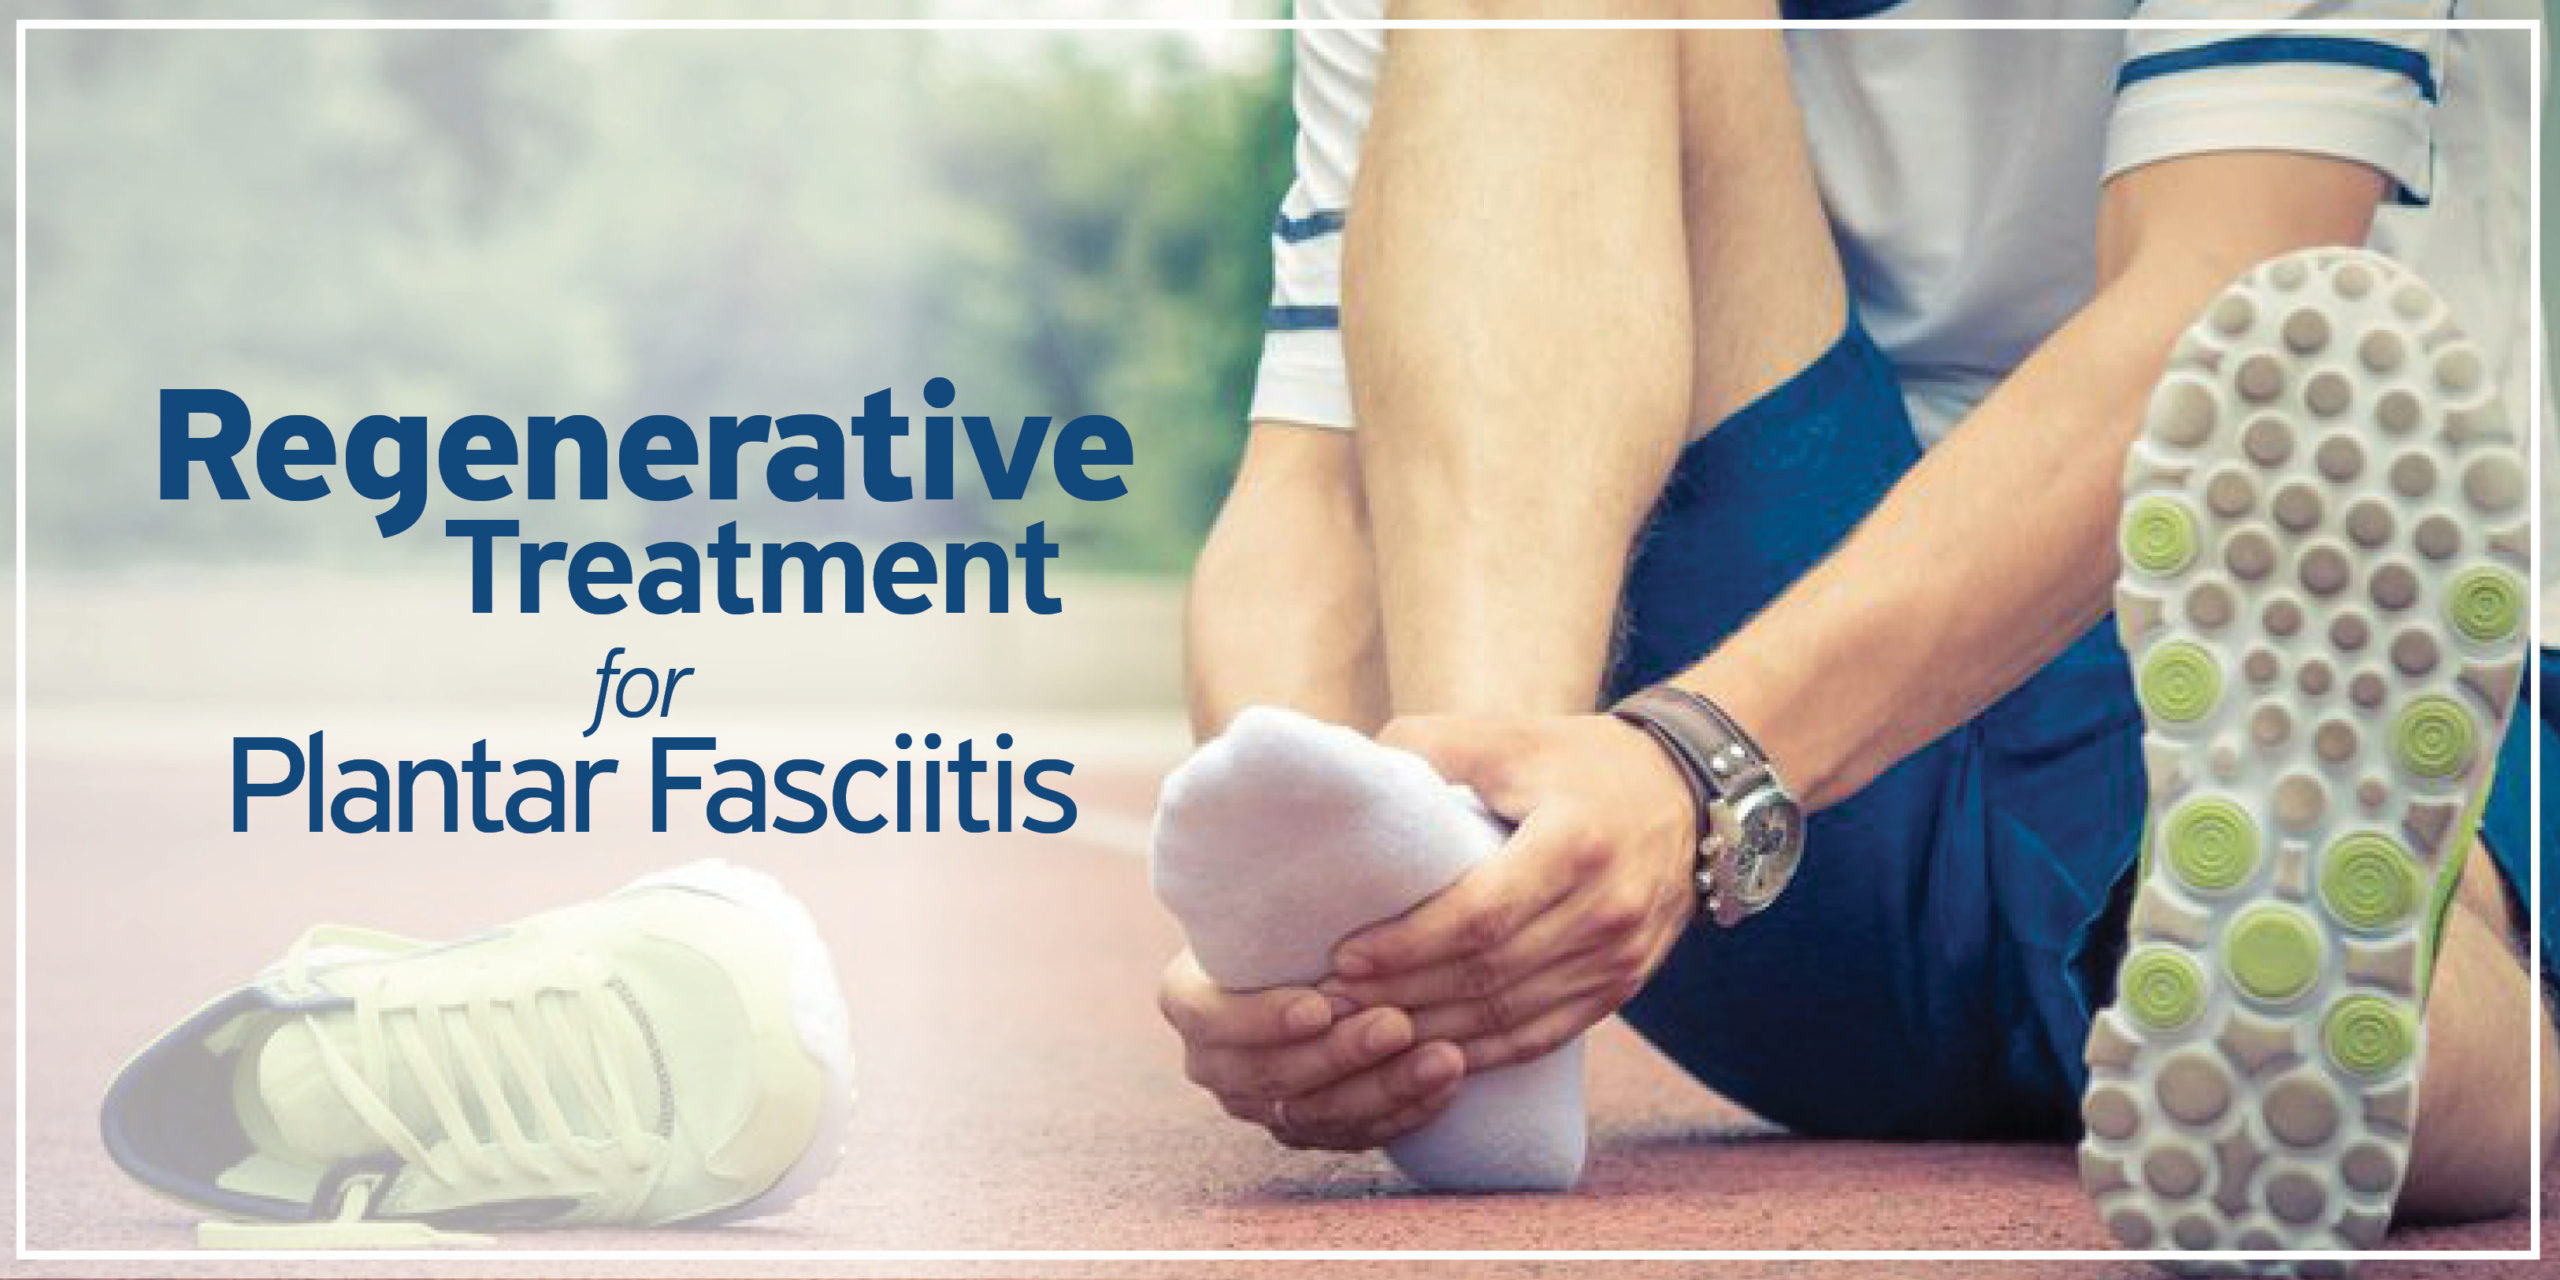 Regenerative treatment for Plantar Fasciitis